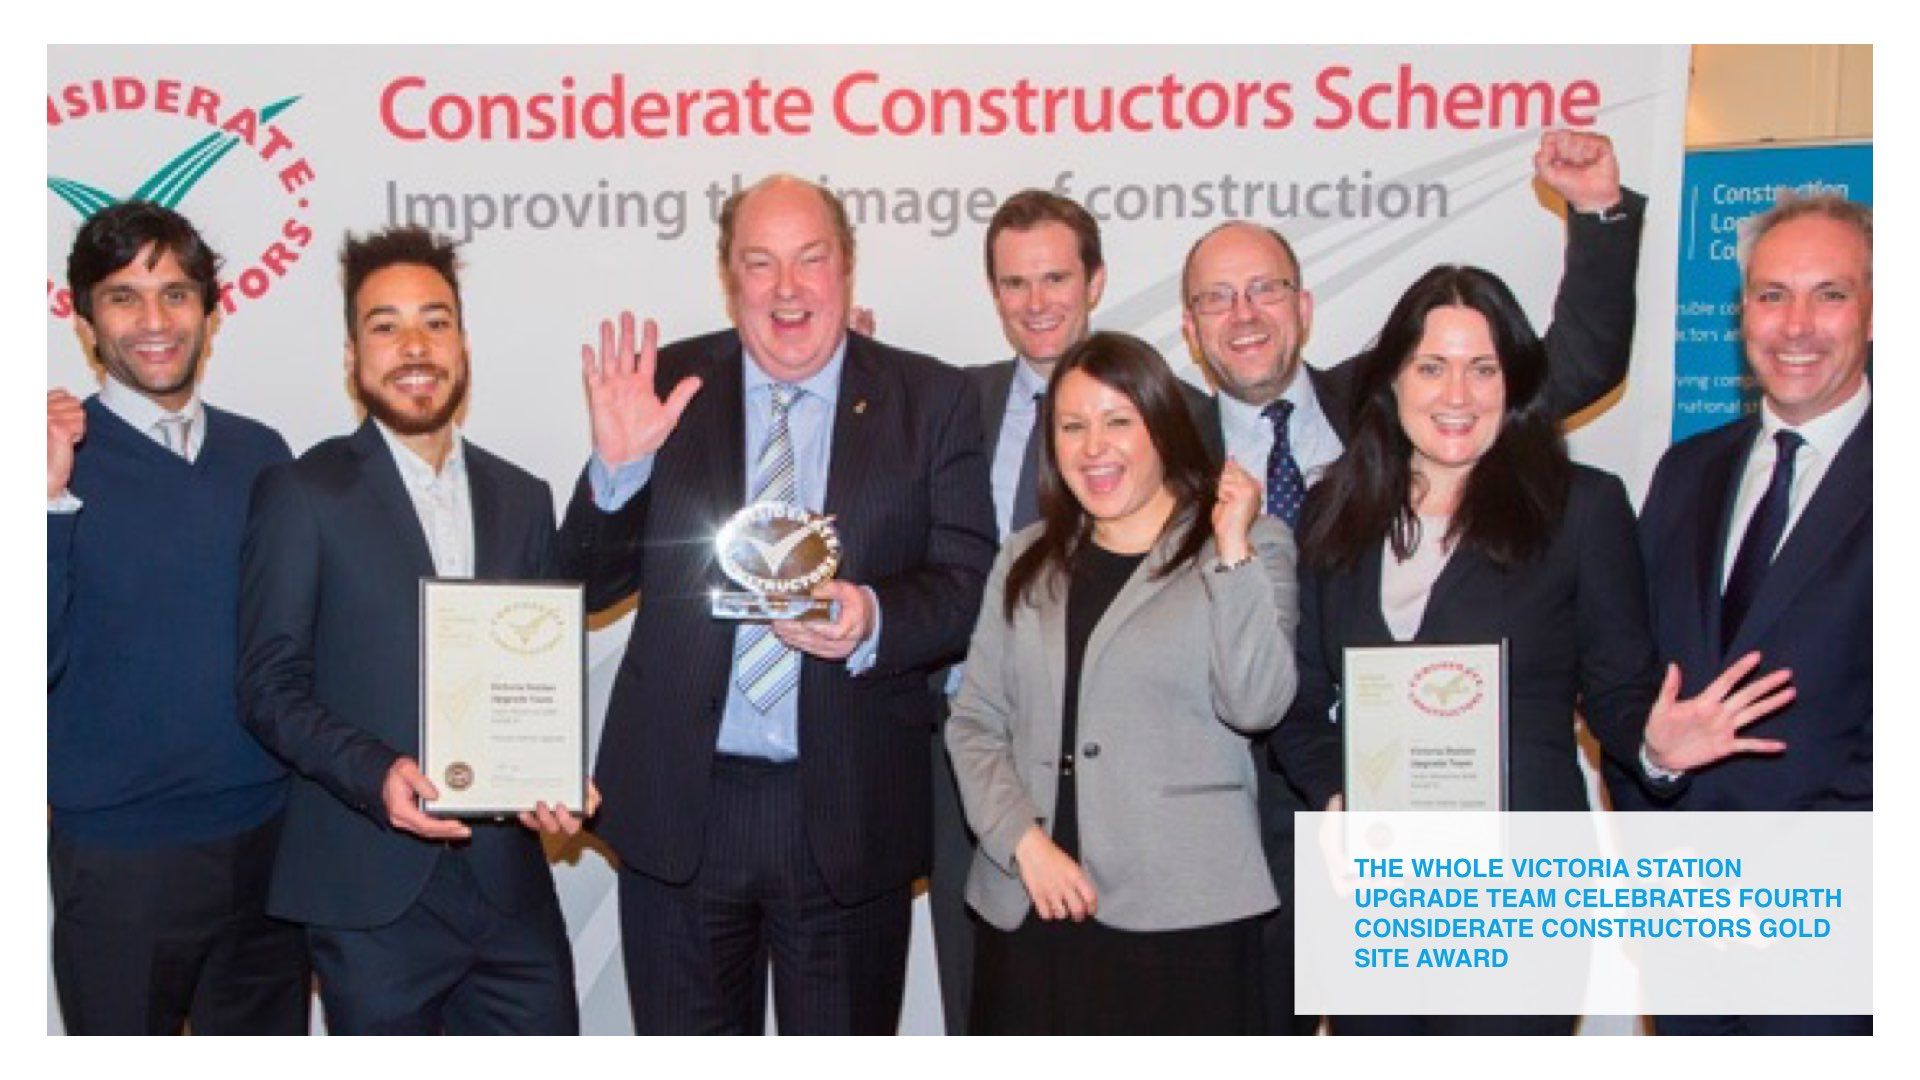 You See You Say helps Victoria Station team to fourth Gold site award